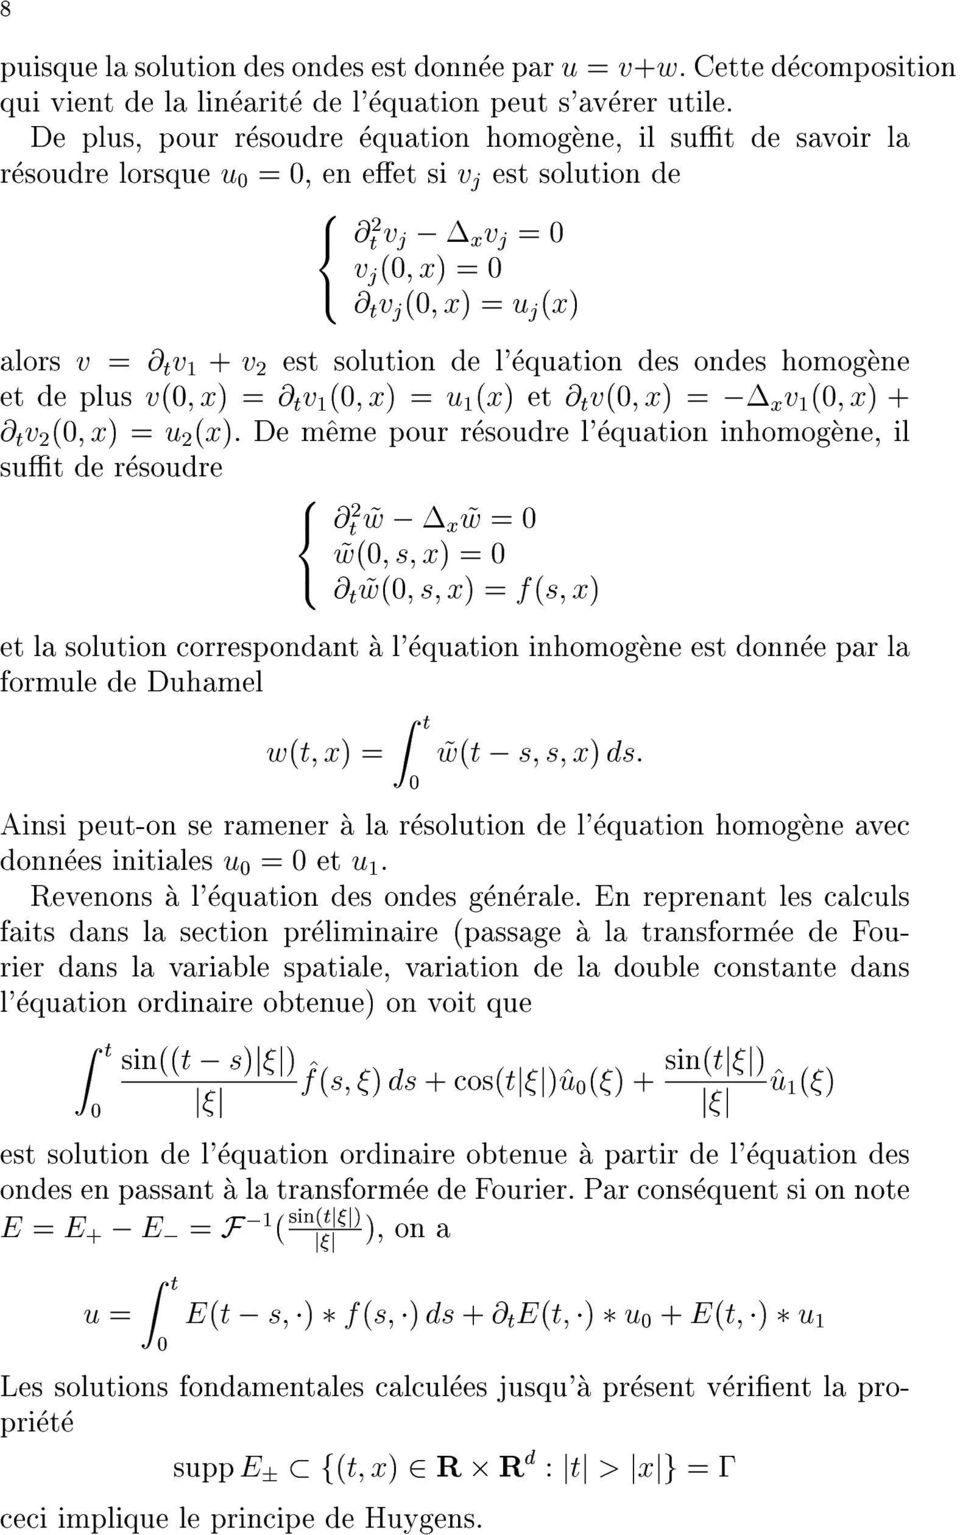 solution = u(x) de l'equation et @tv(0;x) des= ondes xv(0;x)+ homogene sutderesoudre @tv(0;x)=u(x).